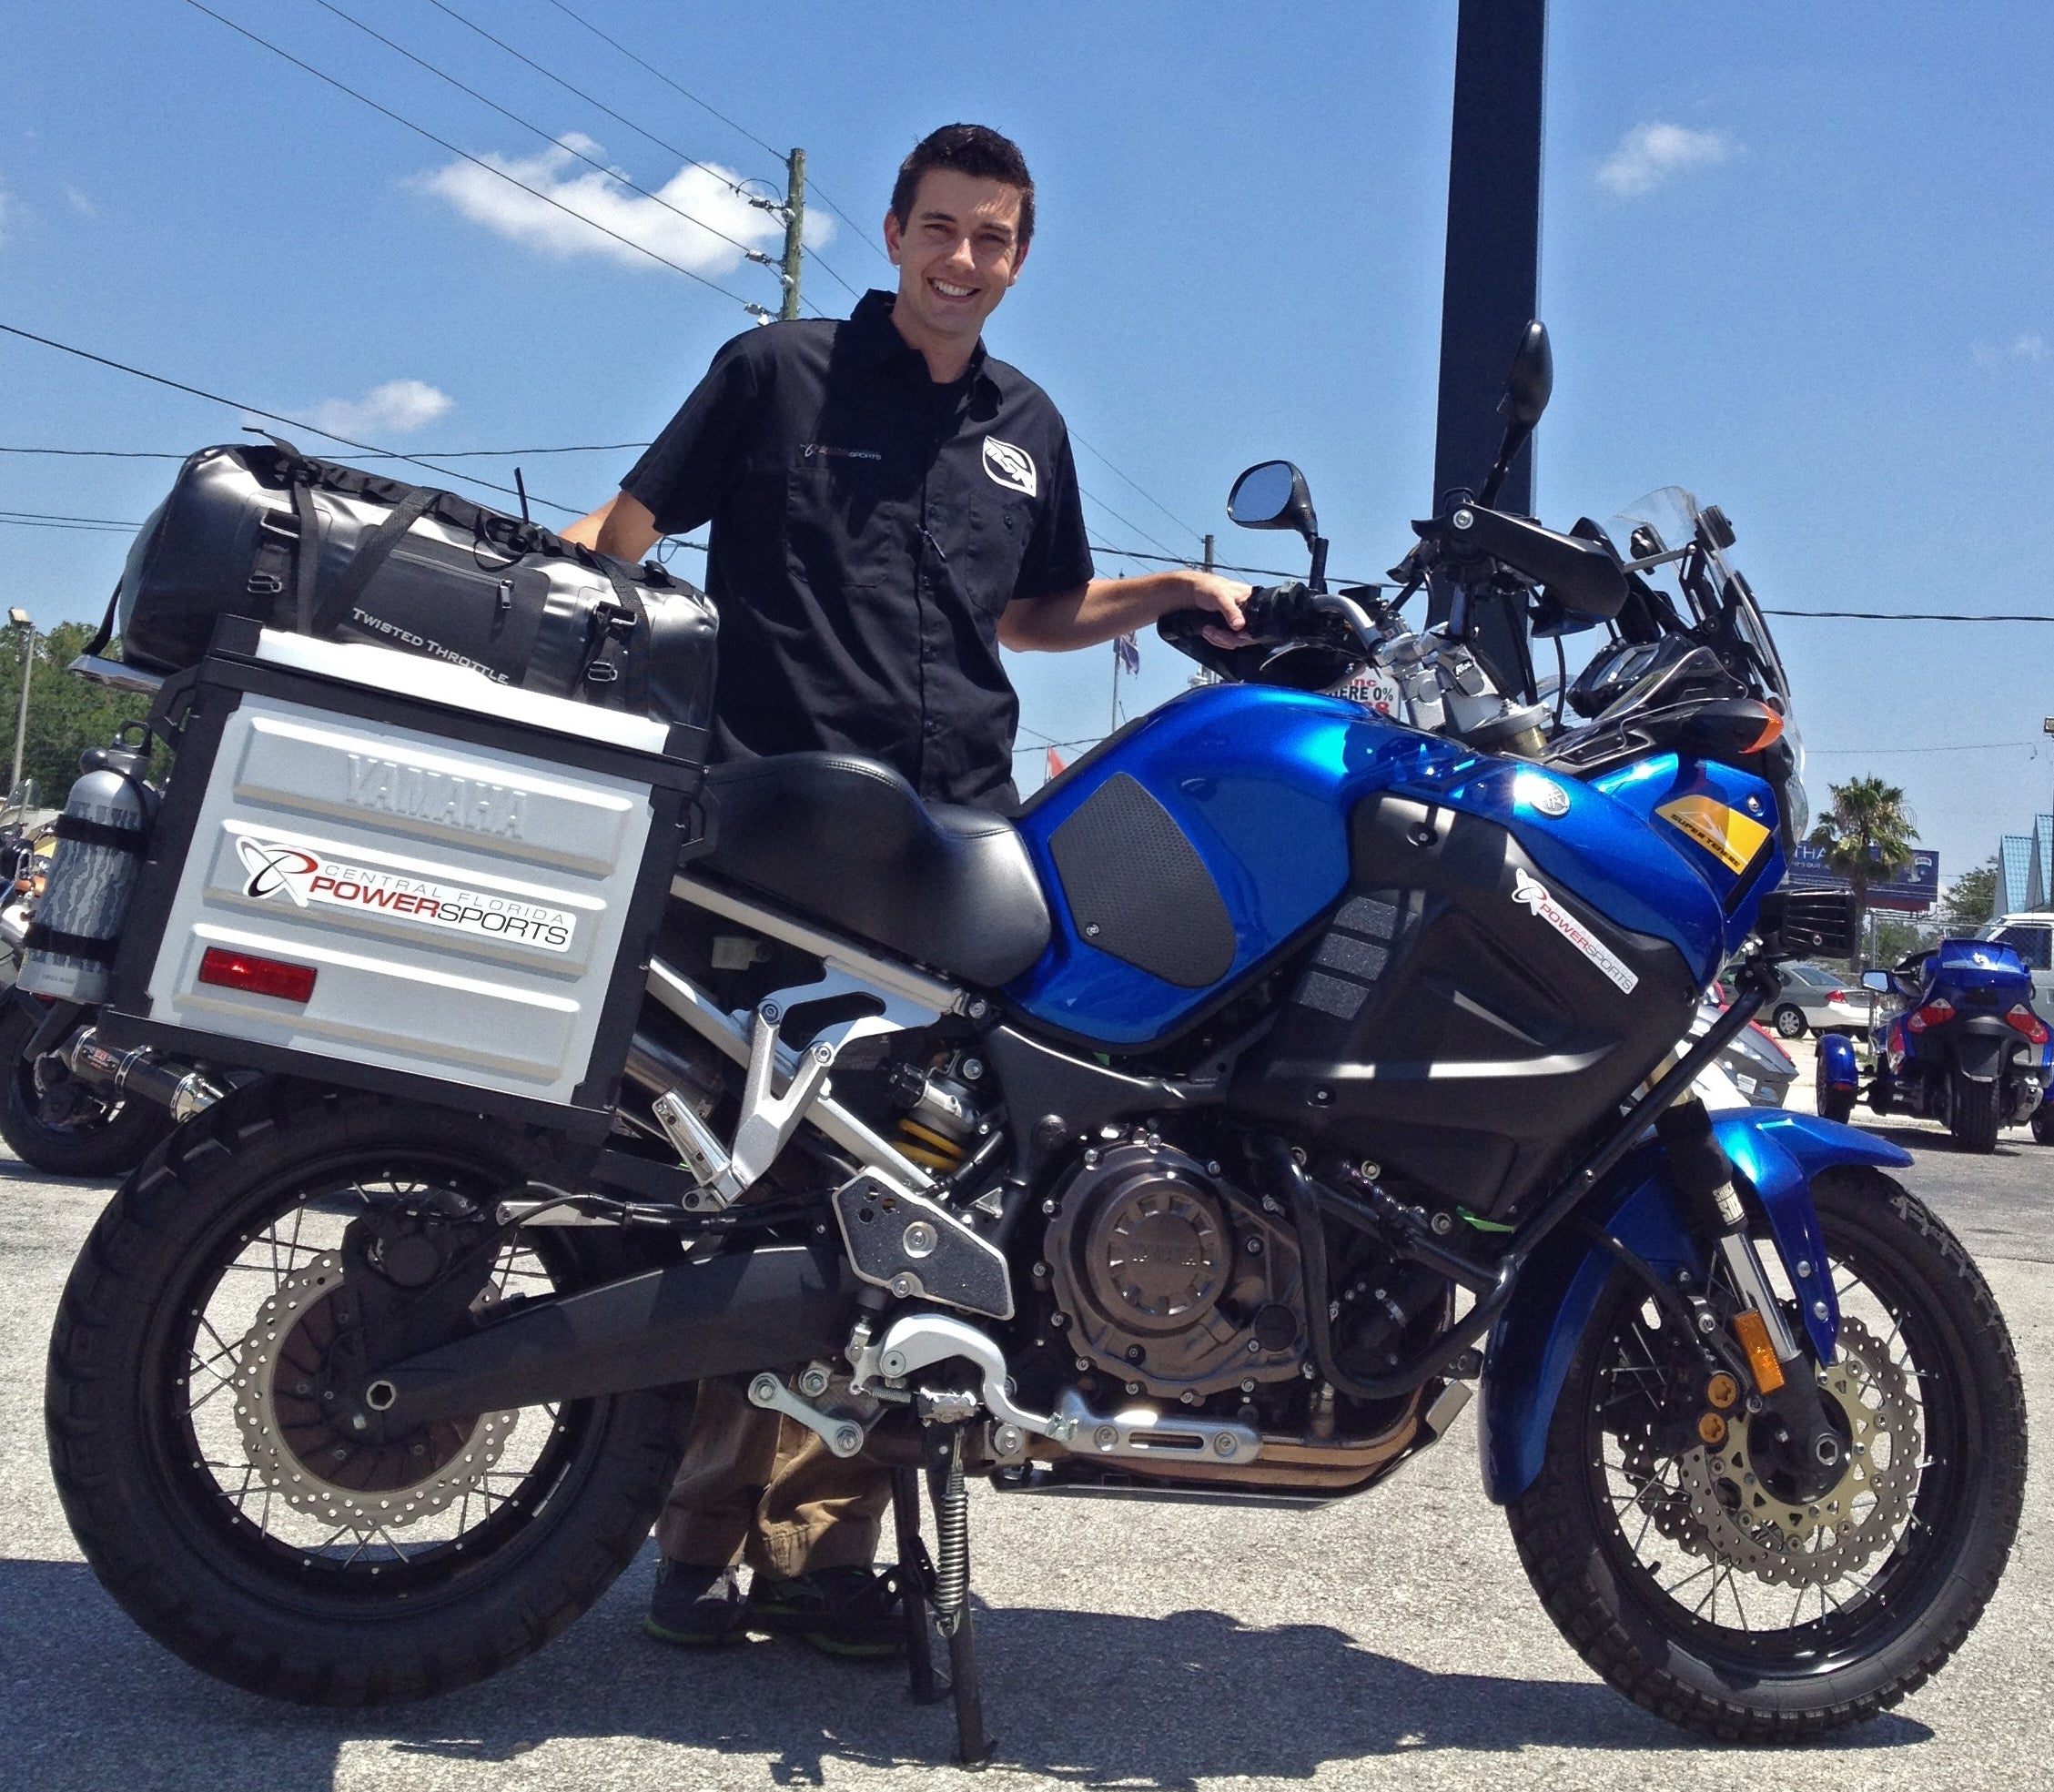 about central florida powersports - can-am, spyder, sea-doo, honda